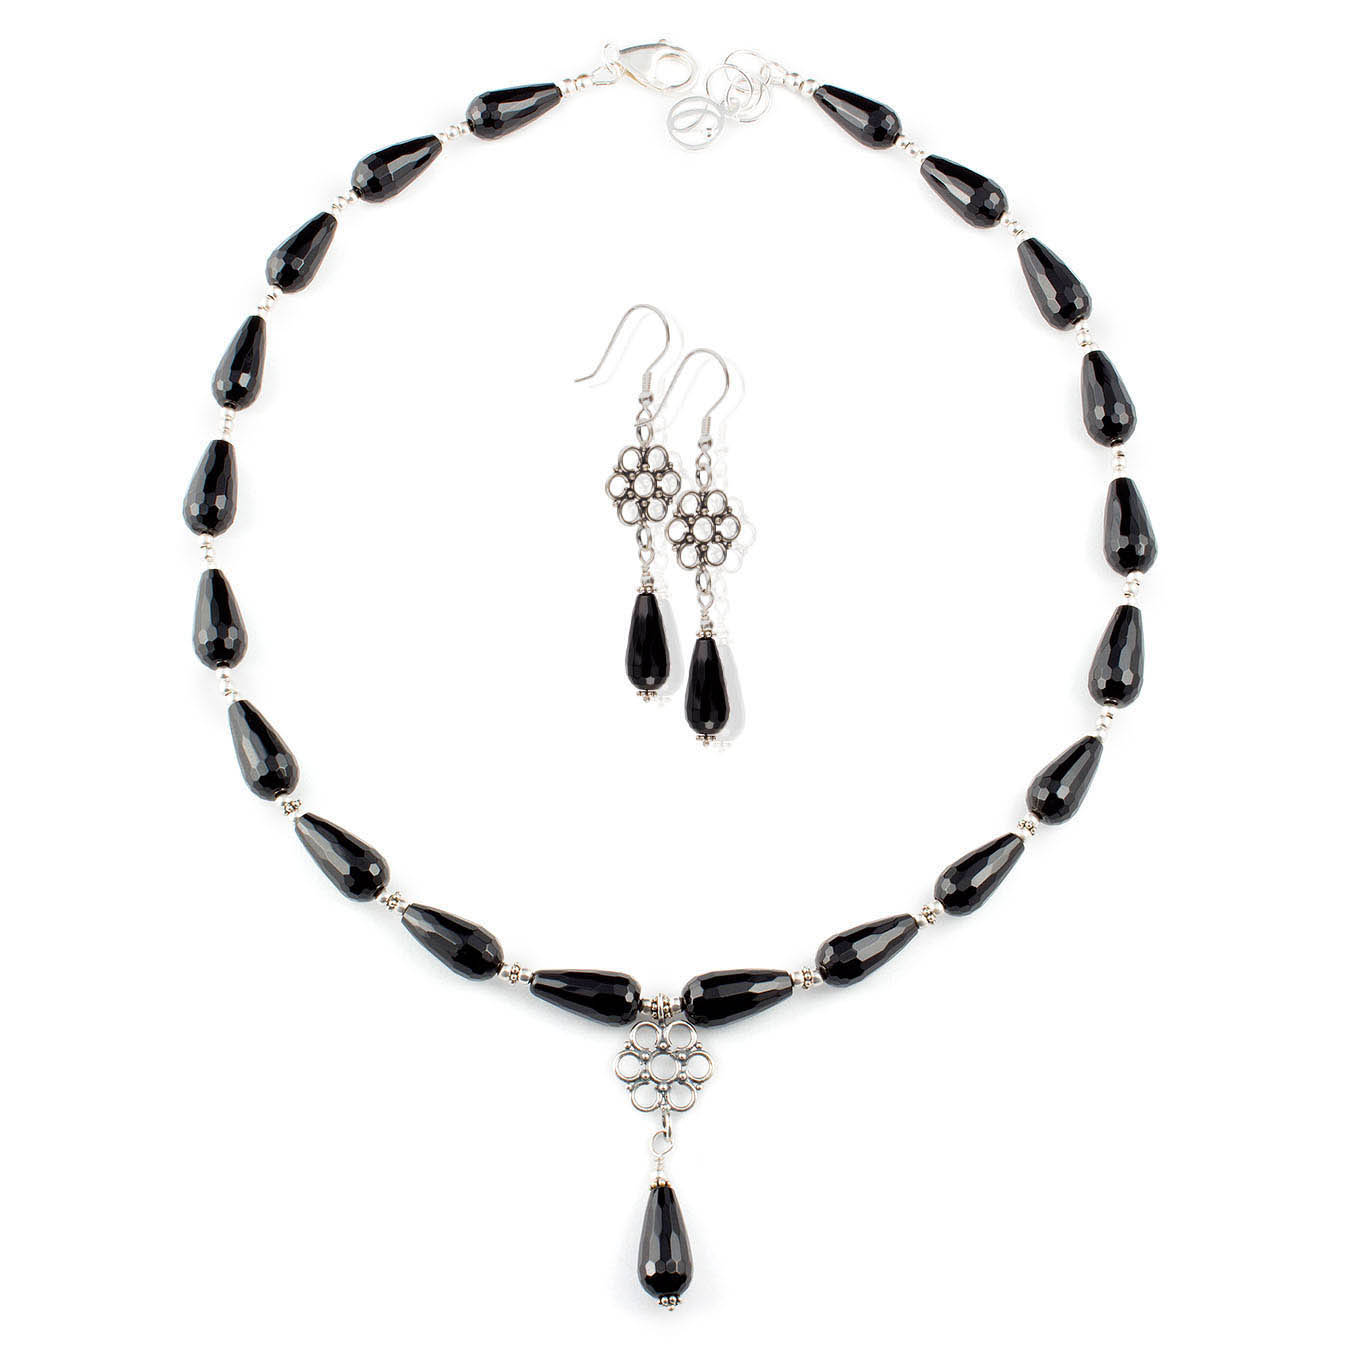 Pendant necklace set made of teardrop black agate and bali silver